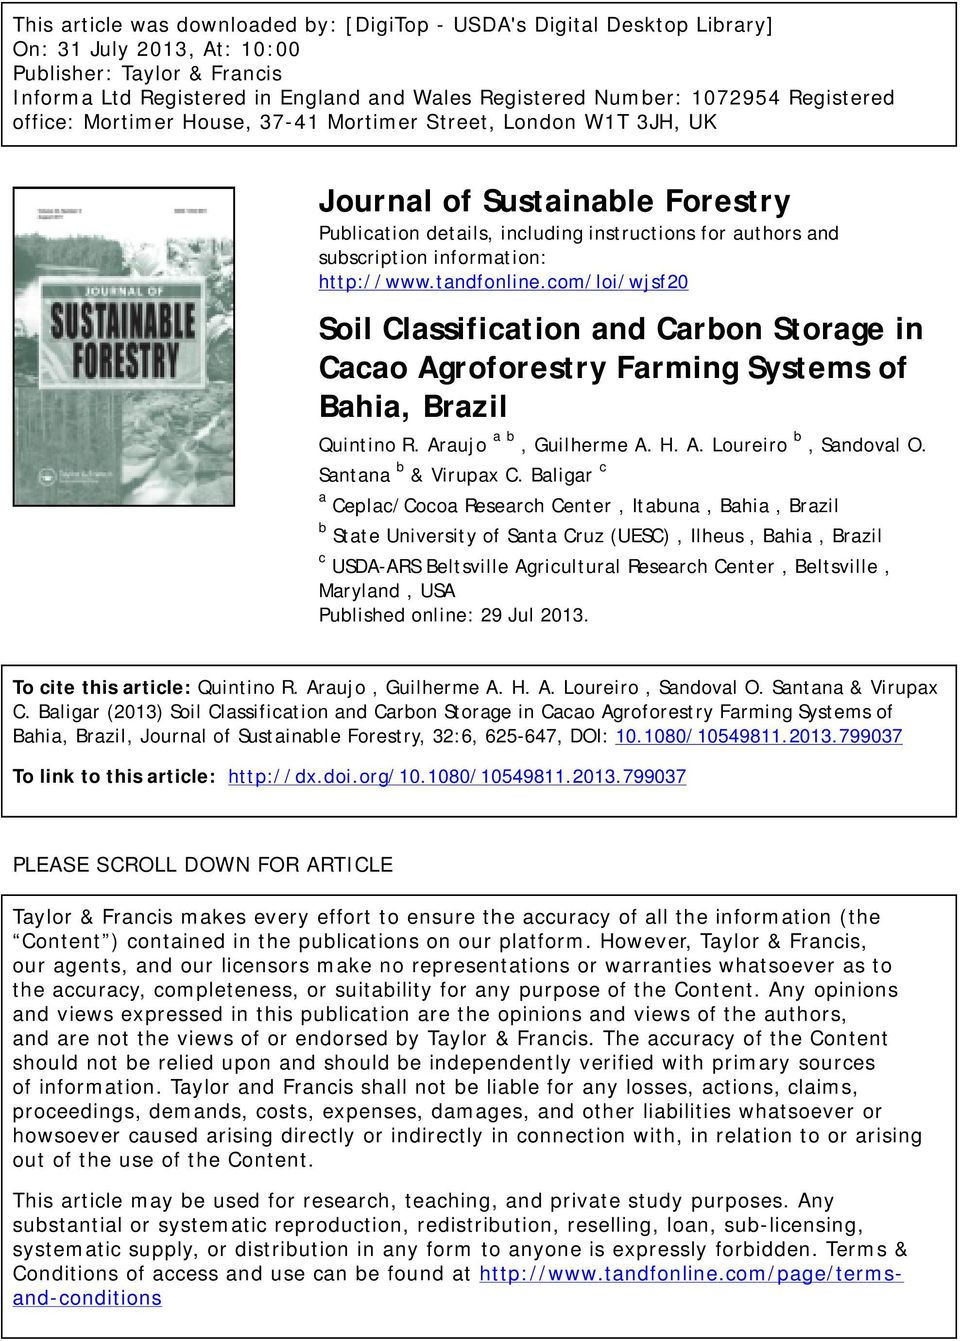 information: http://www.tandfonline.com/loi/wjsf20 Soil Classification and Carbon Storage in Cacao Agroforestry Farming Systems of Bahia, Brazil Quintino R. Araujo a b, Guilherme A. H. A. Loureiro b, Sandoval O.